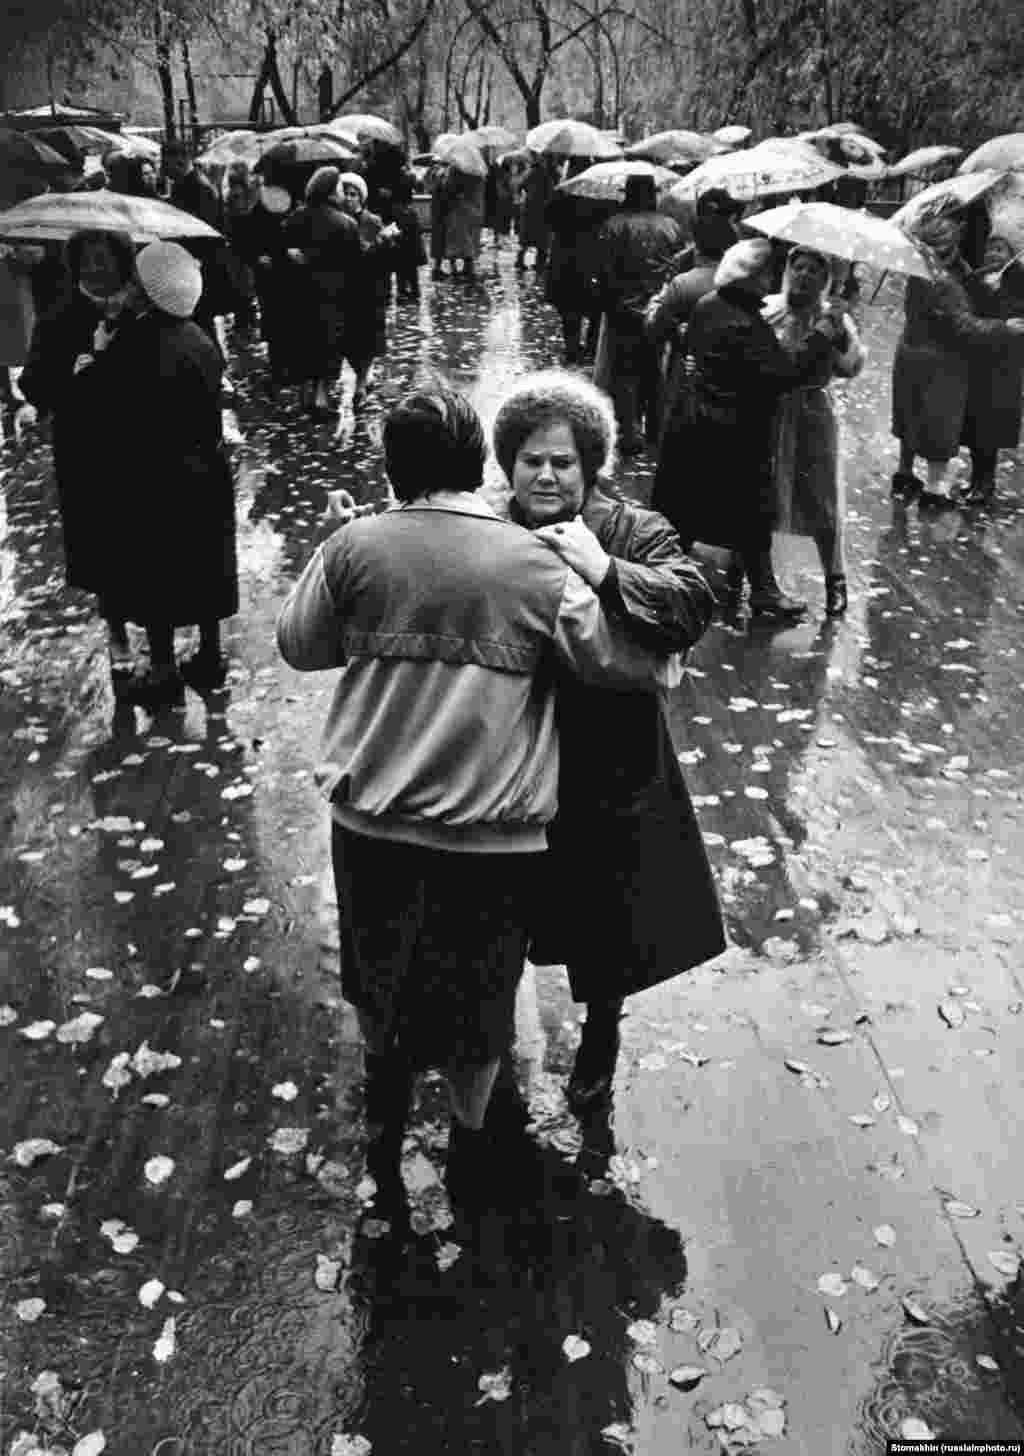 A wet fall day in Moscow, 1990.